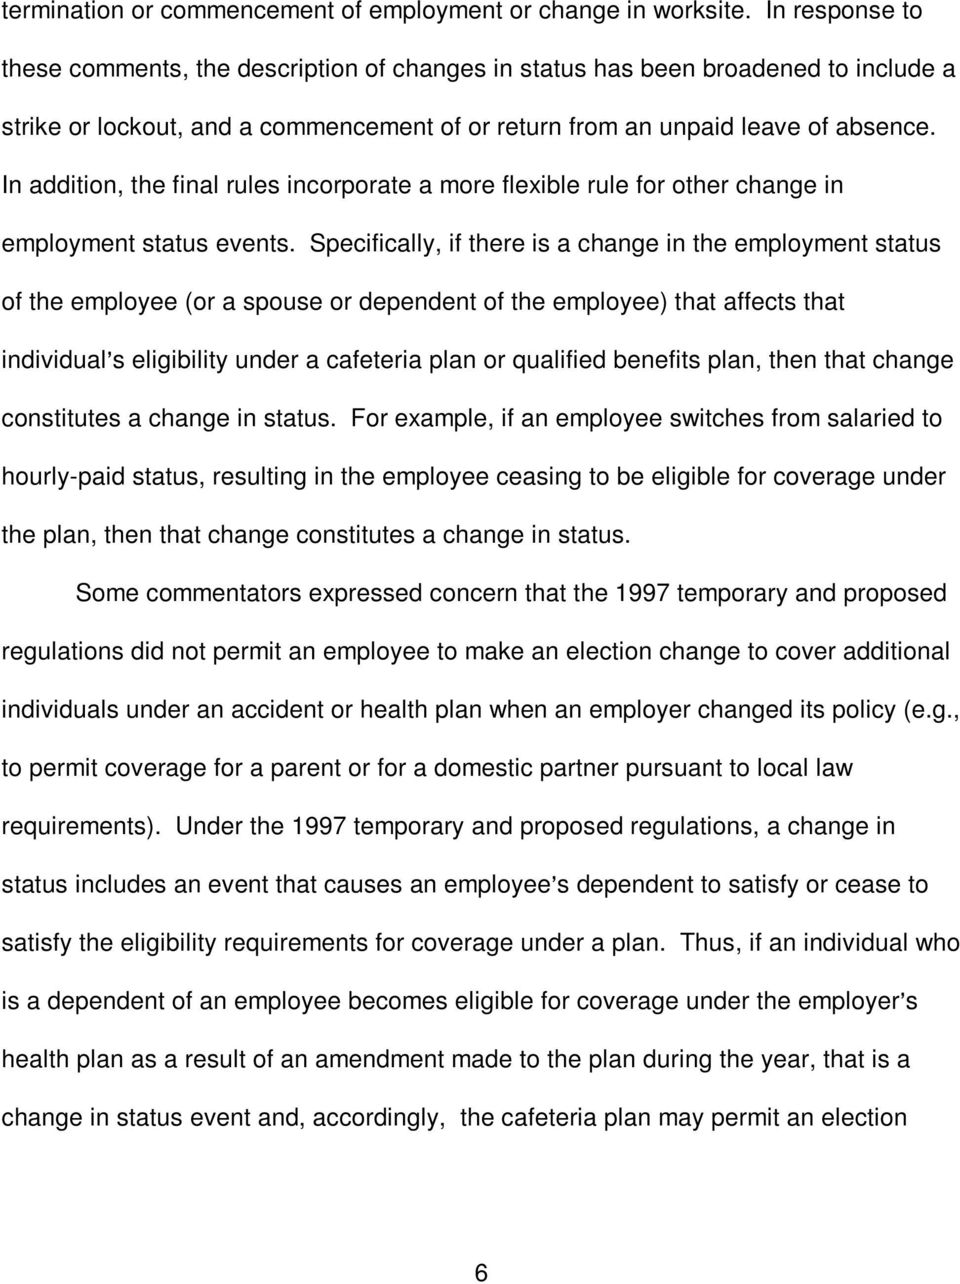 In addition, the final rules incorporate a more flexible rule for other change in employment status events.